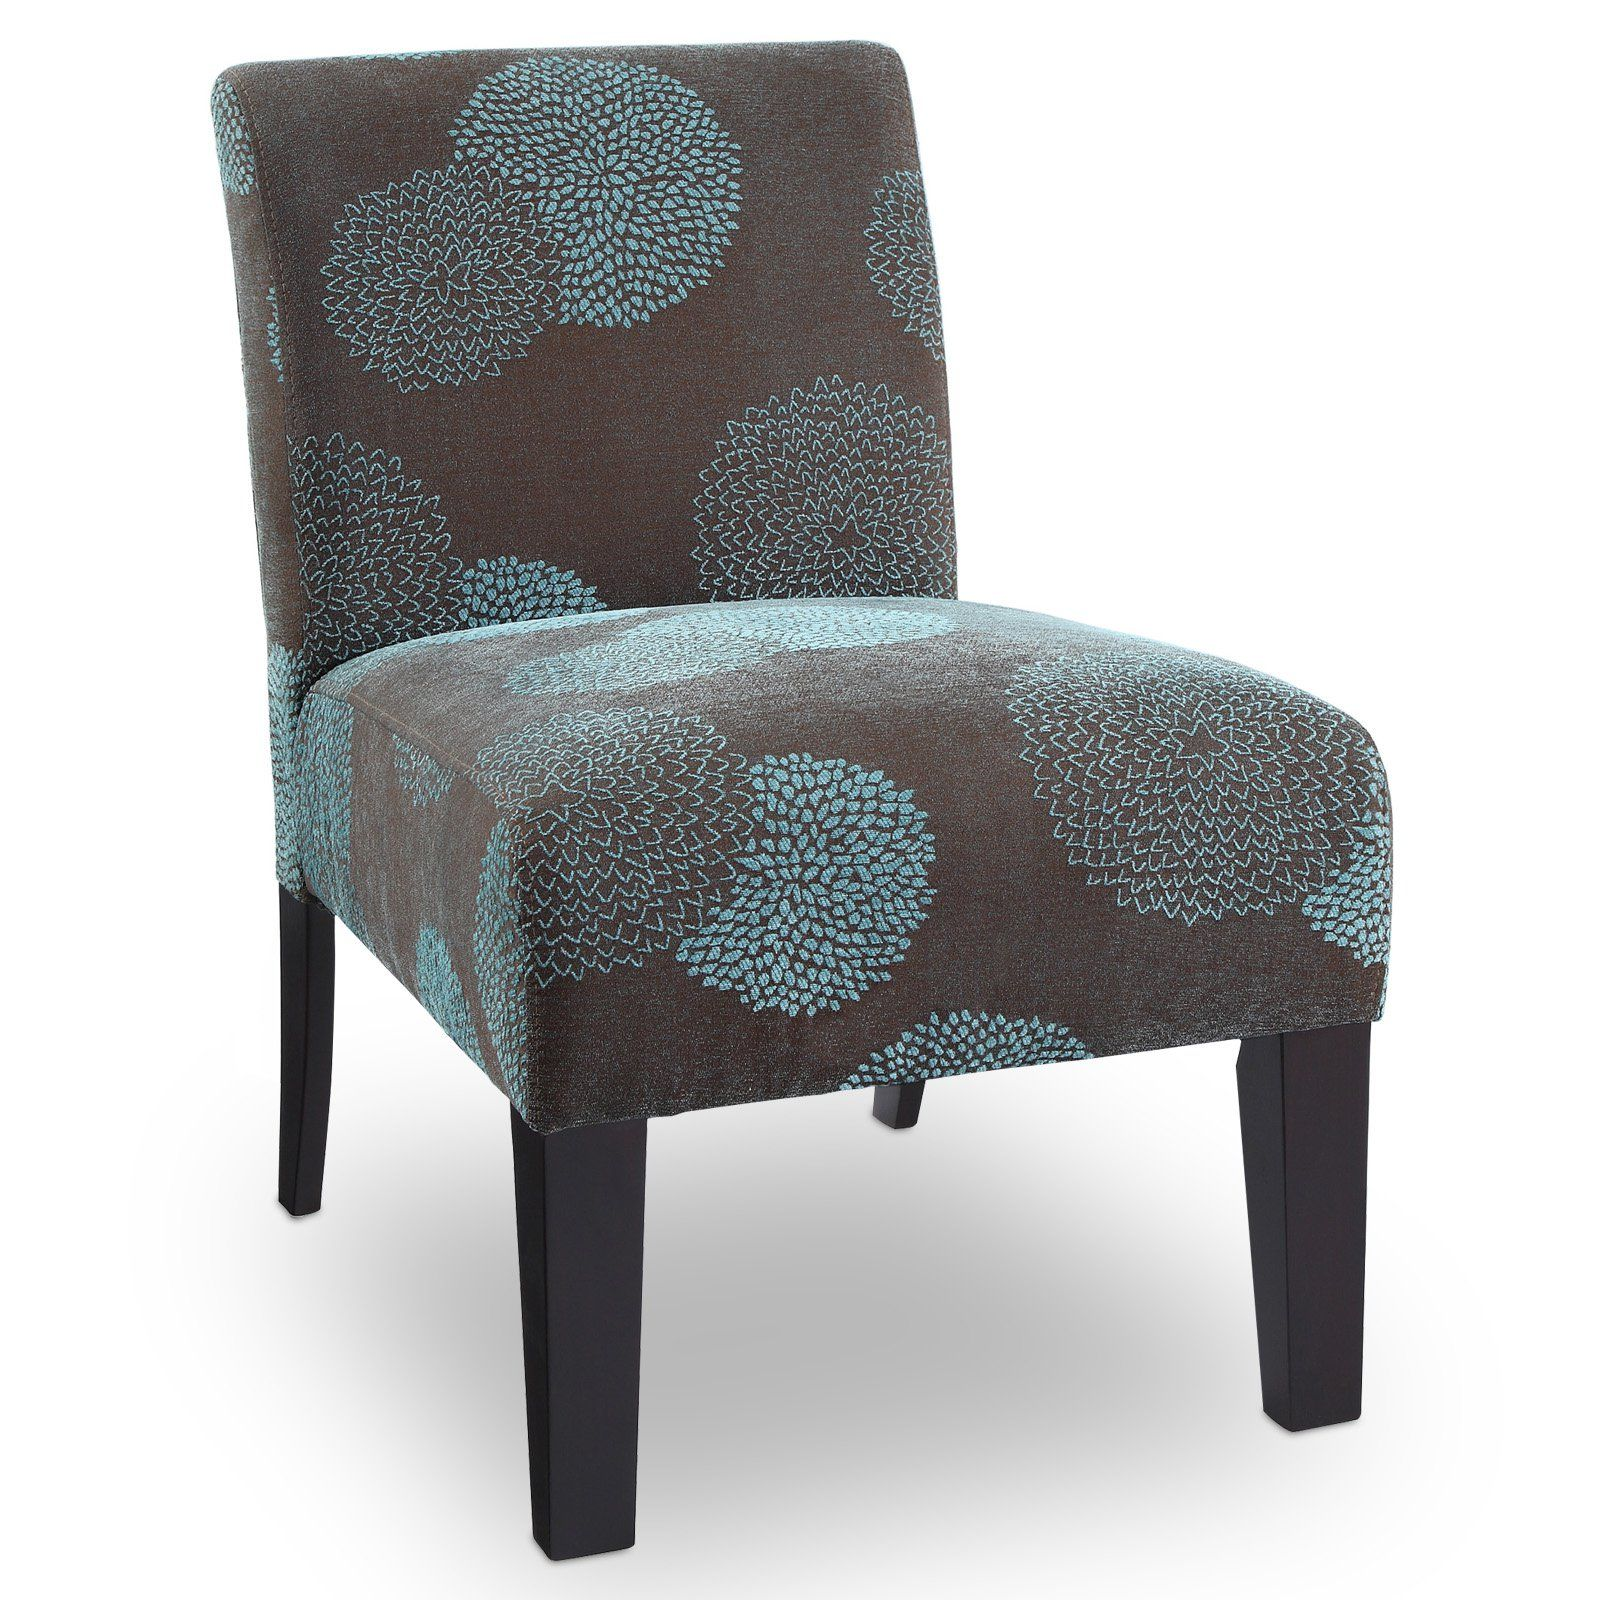 Best Deco Accent Chair Sunflower Blue In 2019 Upholstered 640 x 480